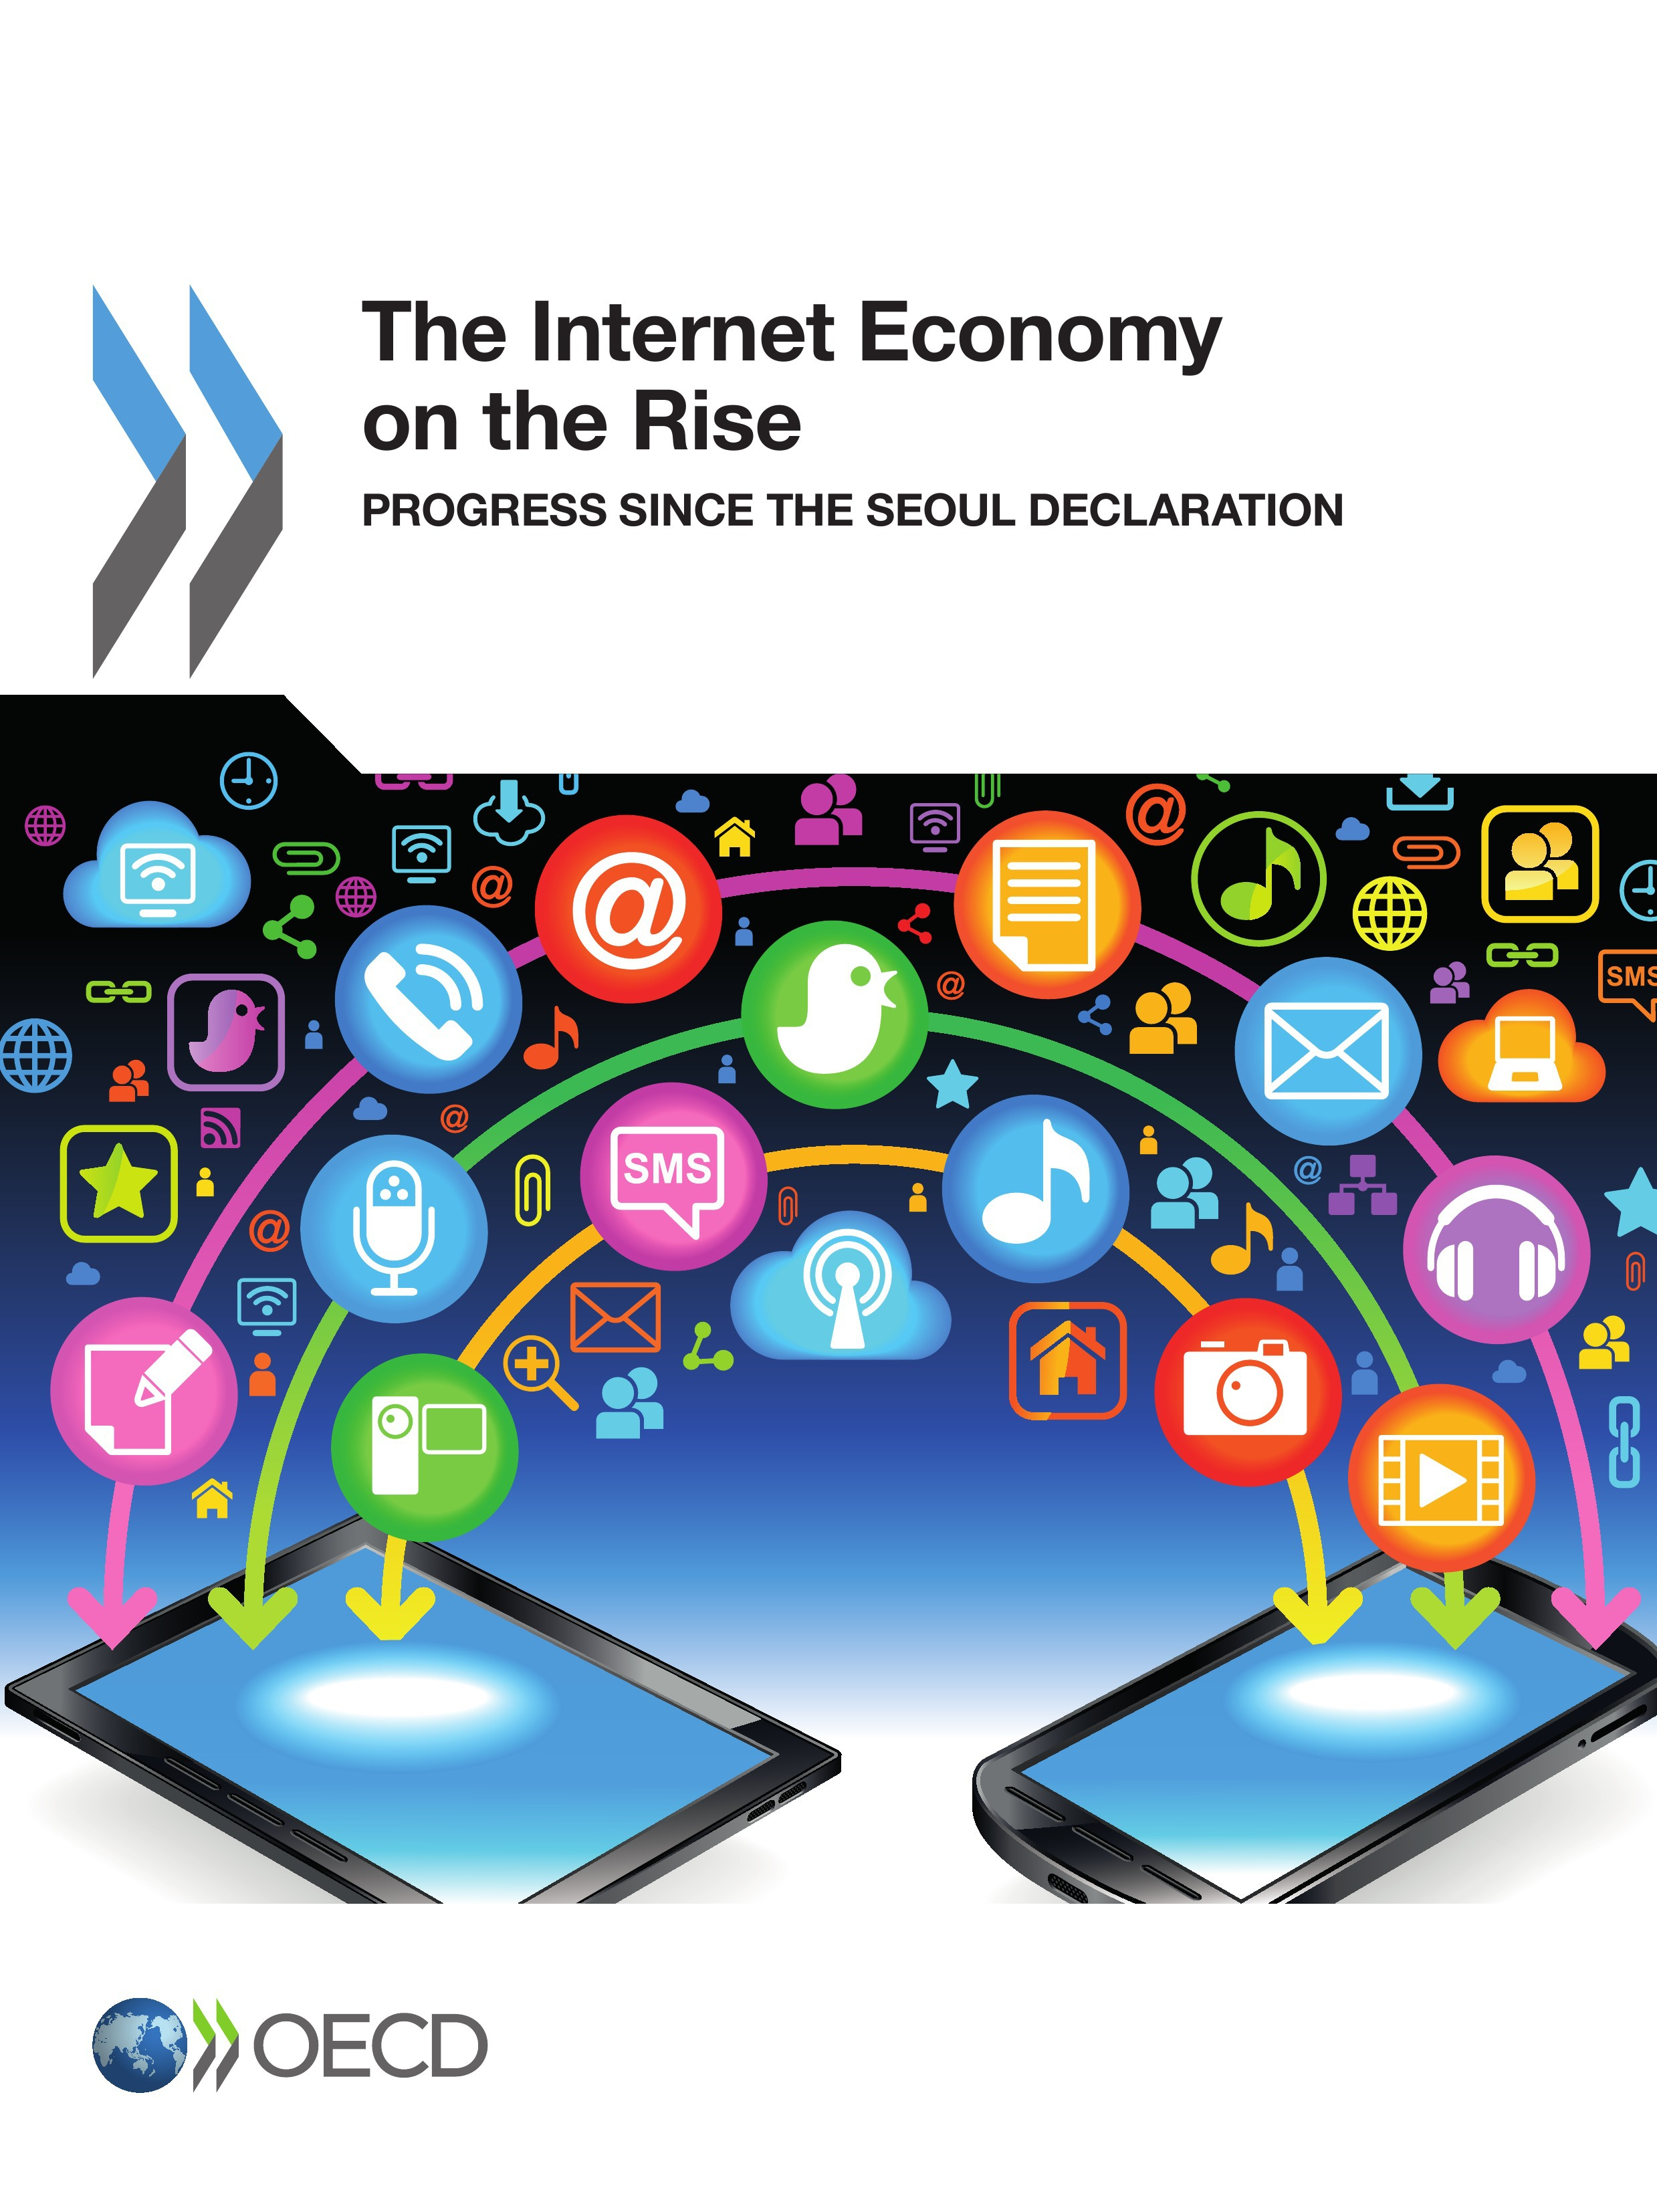 The Internet Economy on the Rise